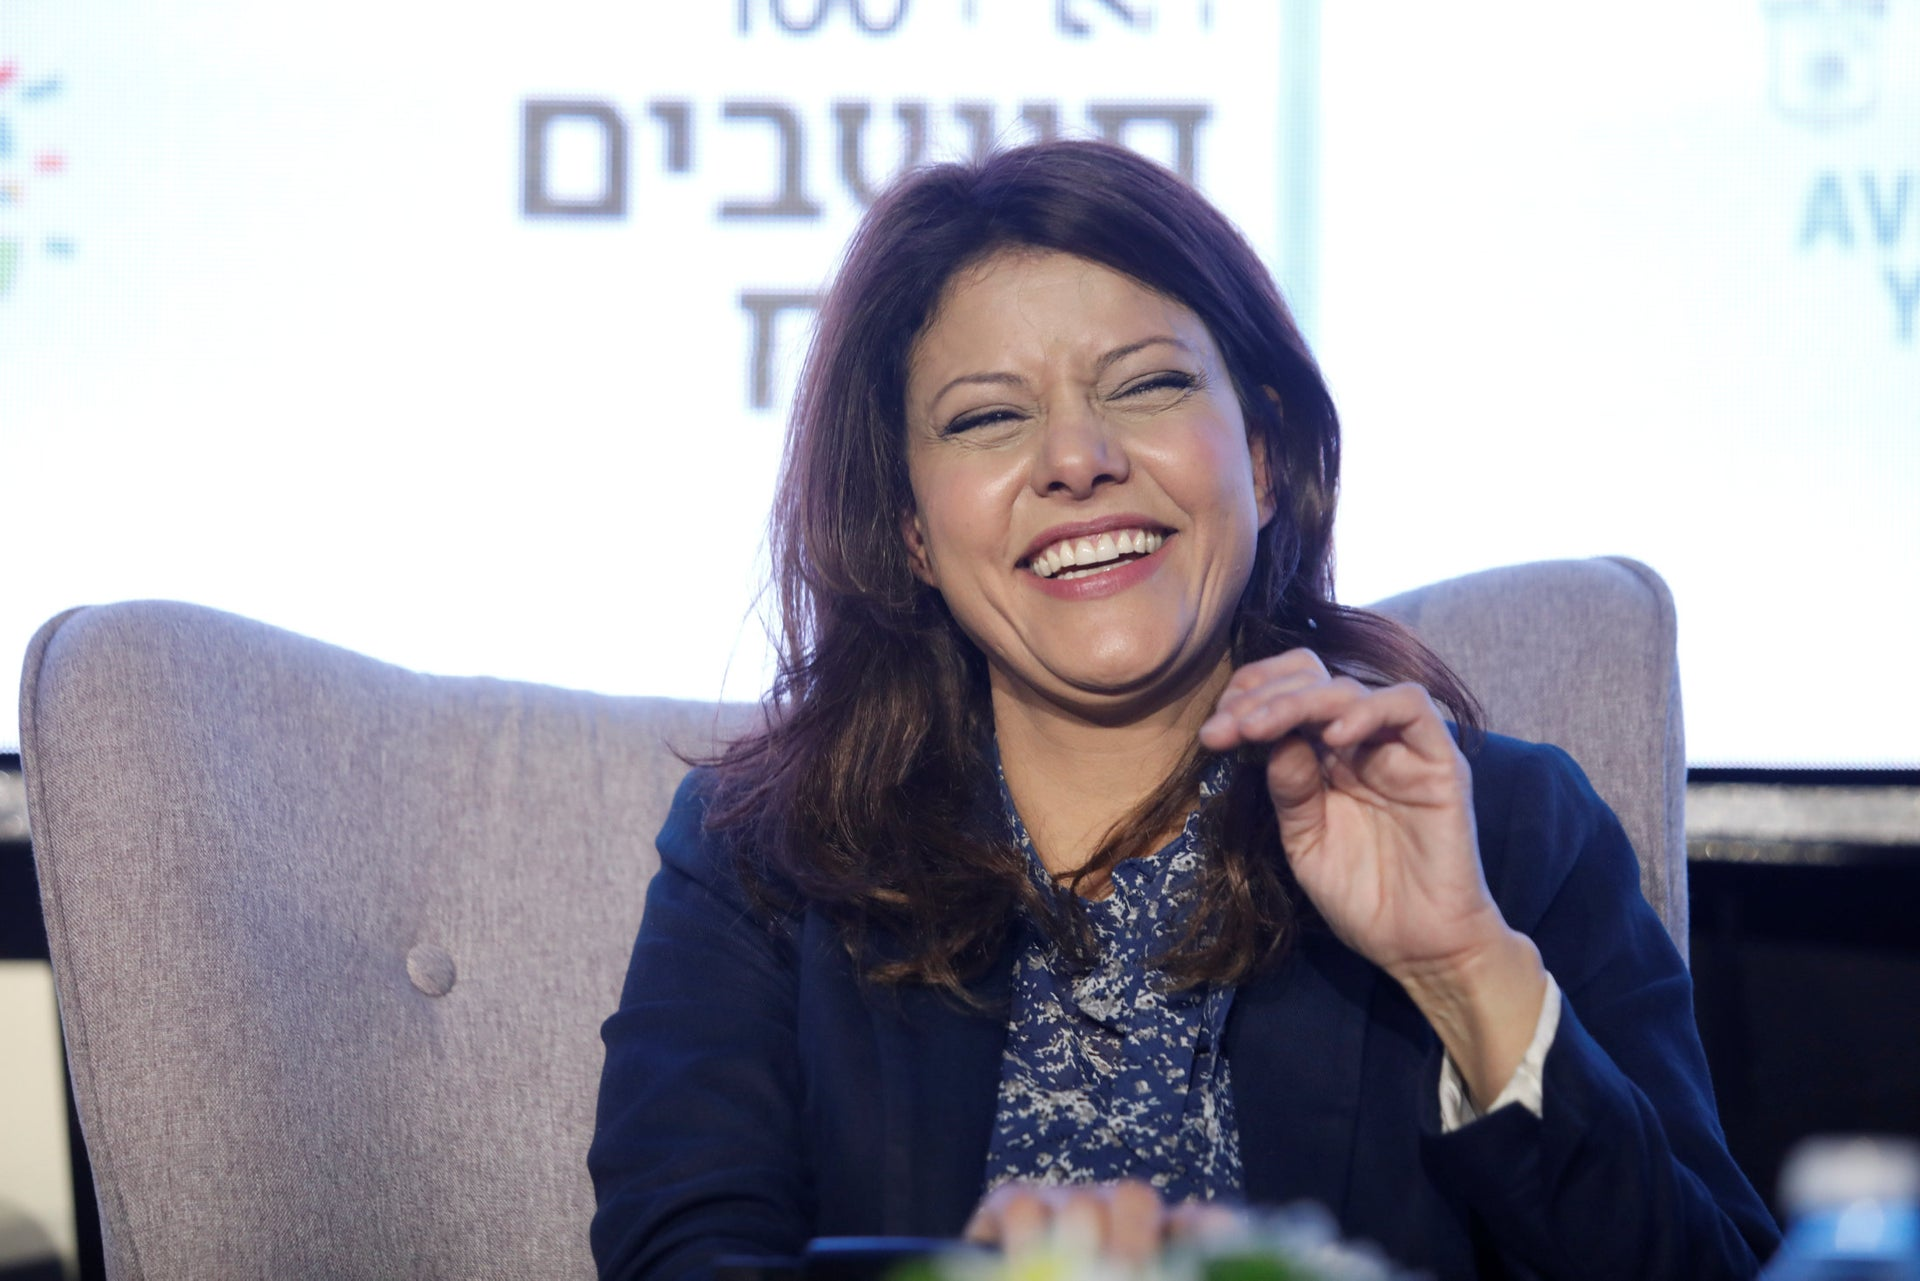 Gesher leader Orli Levi-Abekasis speaking at the Haaretz election conference, March 28, 2019.